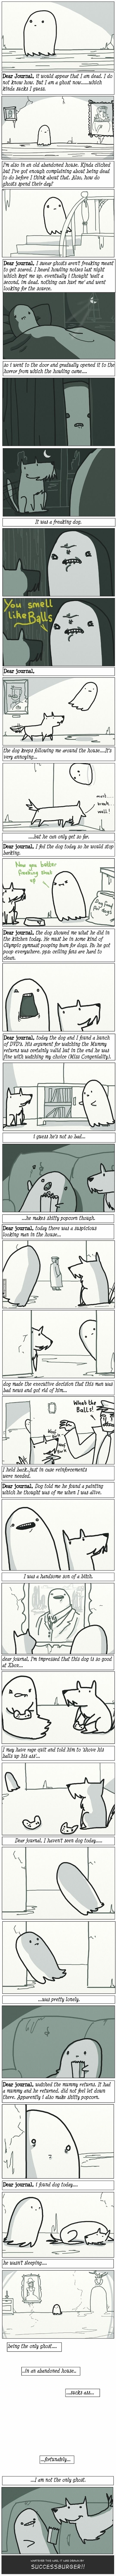 The Cutest Ghost Story Ever.